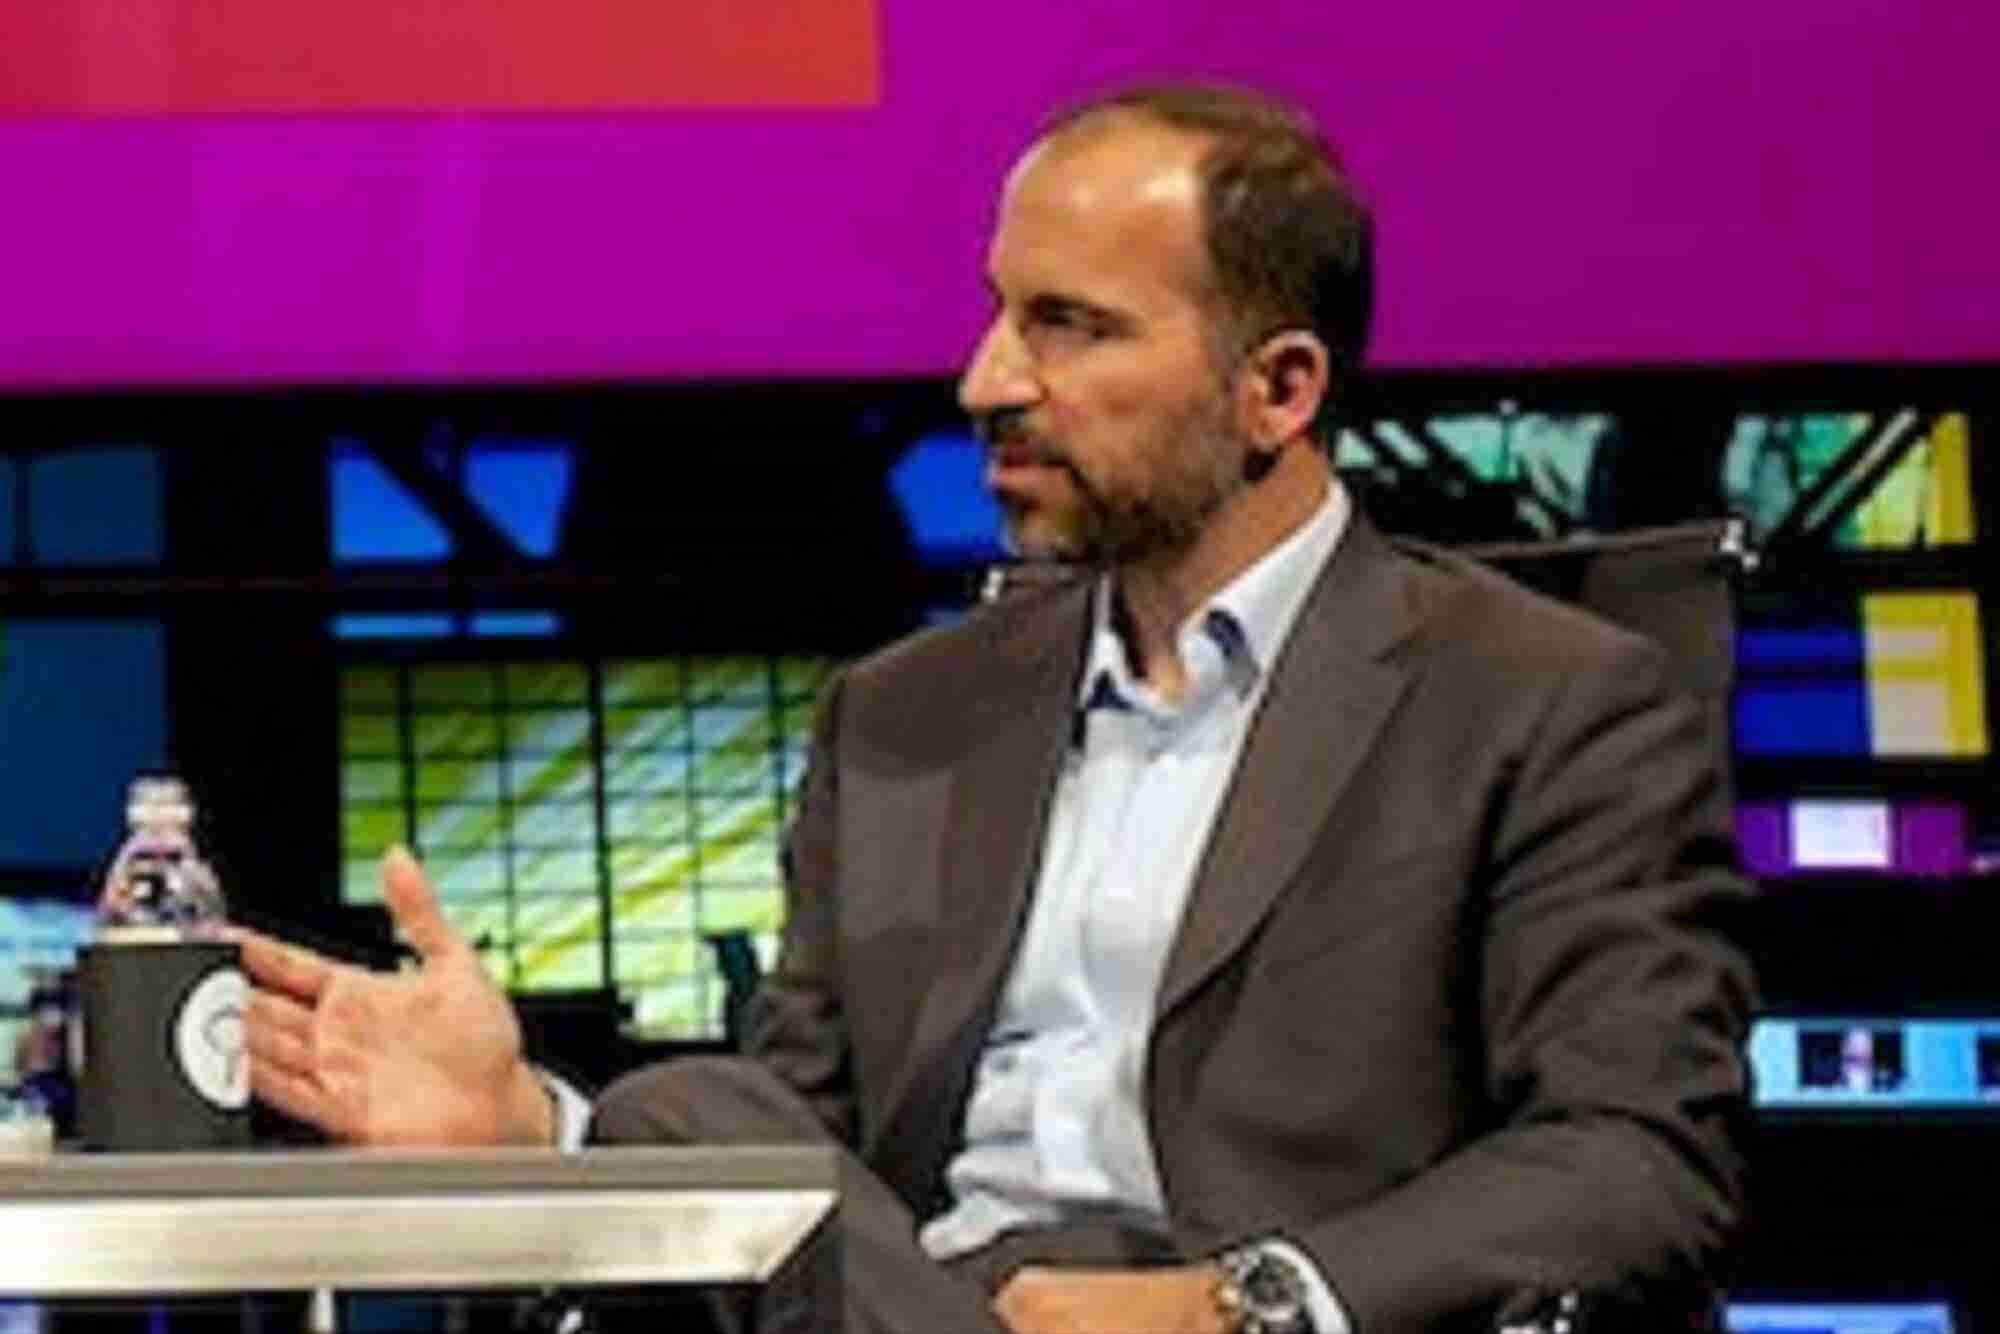 Uber CEO Dara Khosrowshahi is in India and He says Ola to Competition